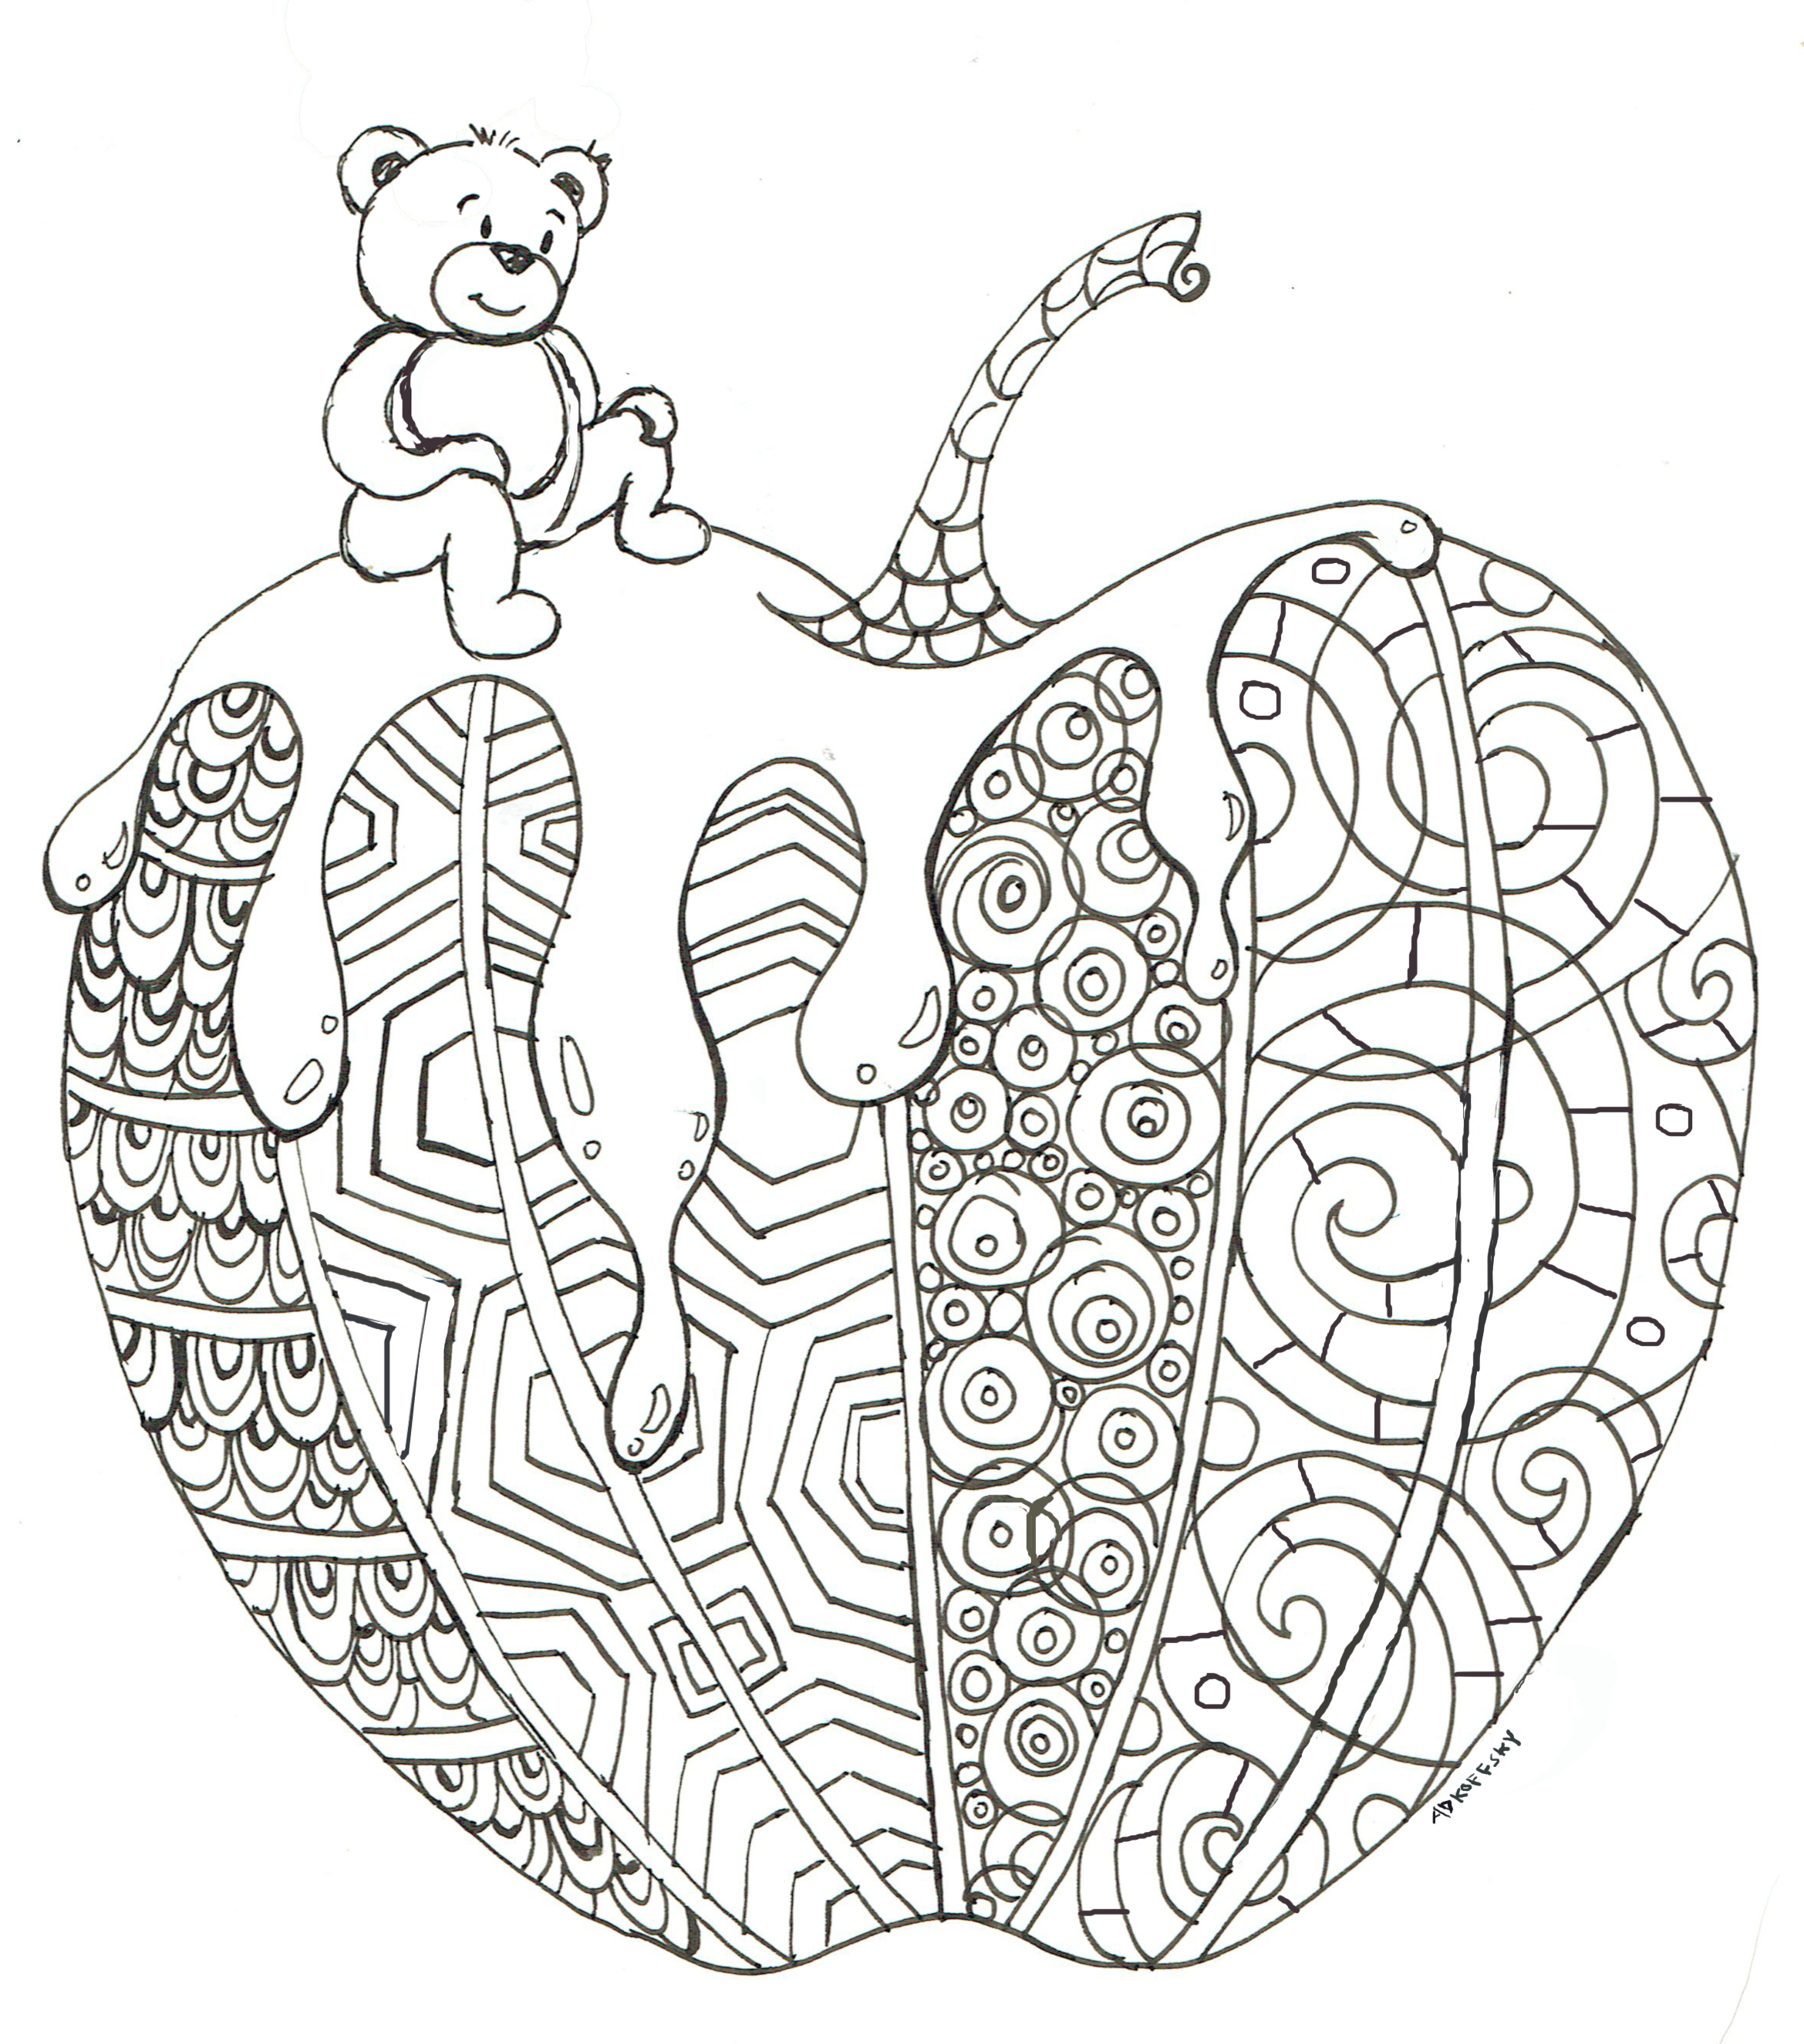 Free coloring pages new year 2016 - Free Coloring Pages New Year 2016 56